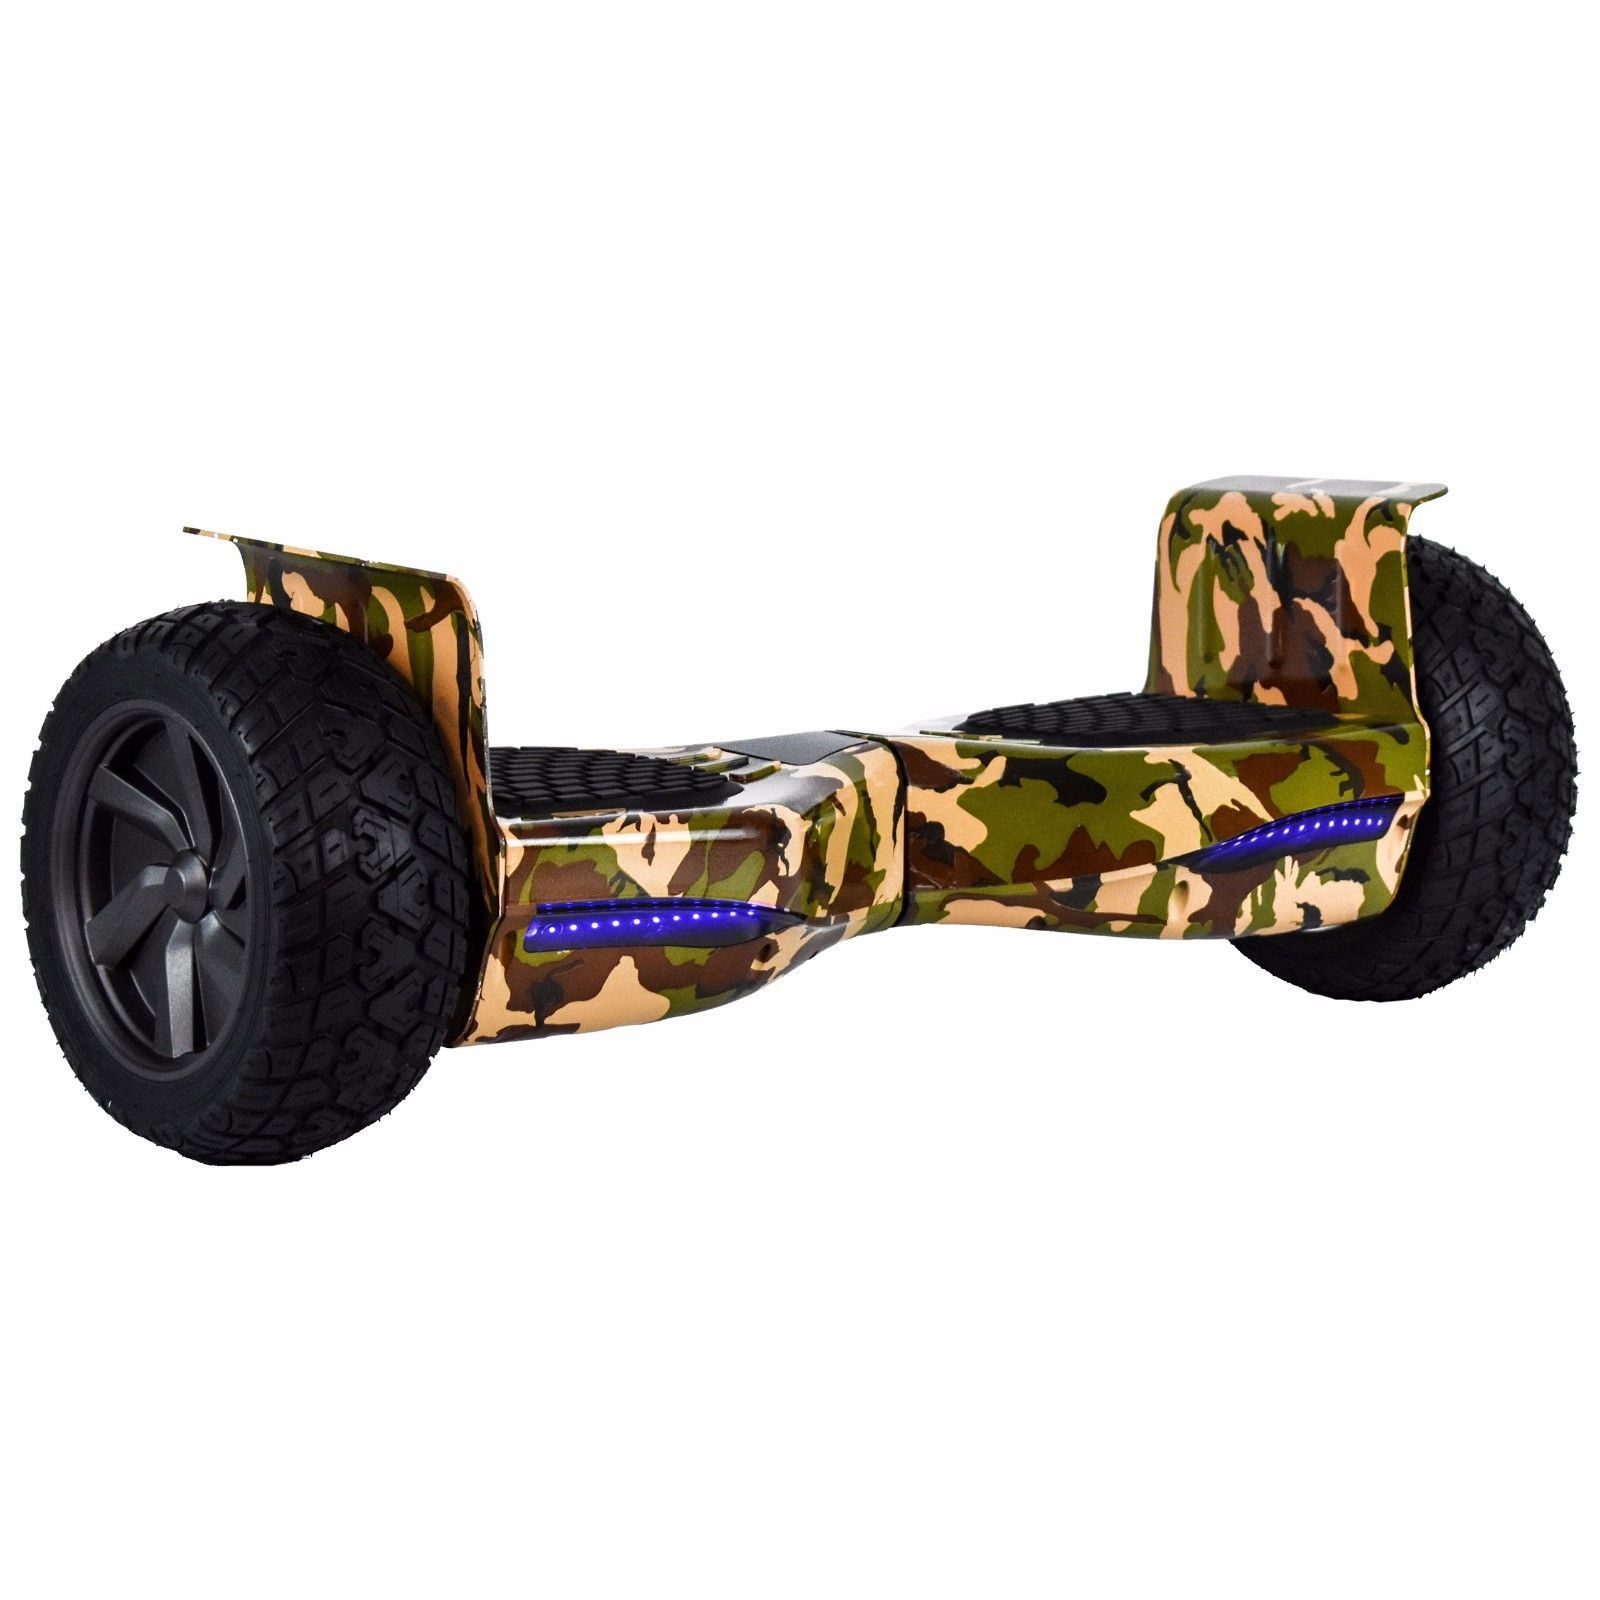 "8.5"" Electric Self Balancing Scooter Hoverboard Off Road Bluetooth - HoverBoard4sale"